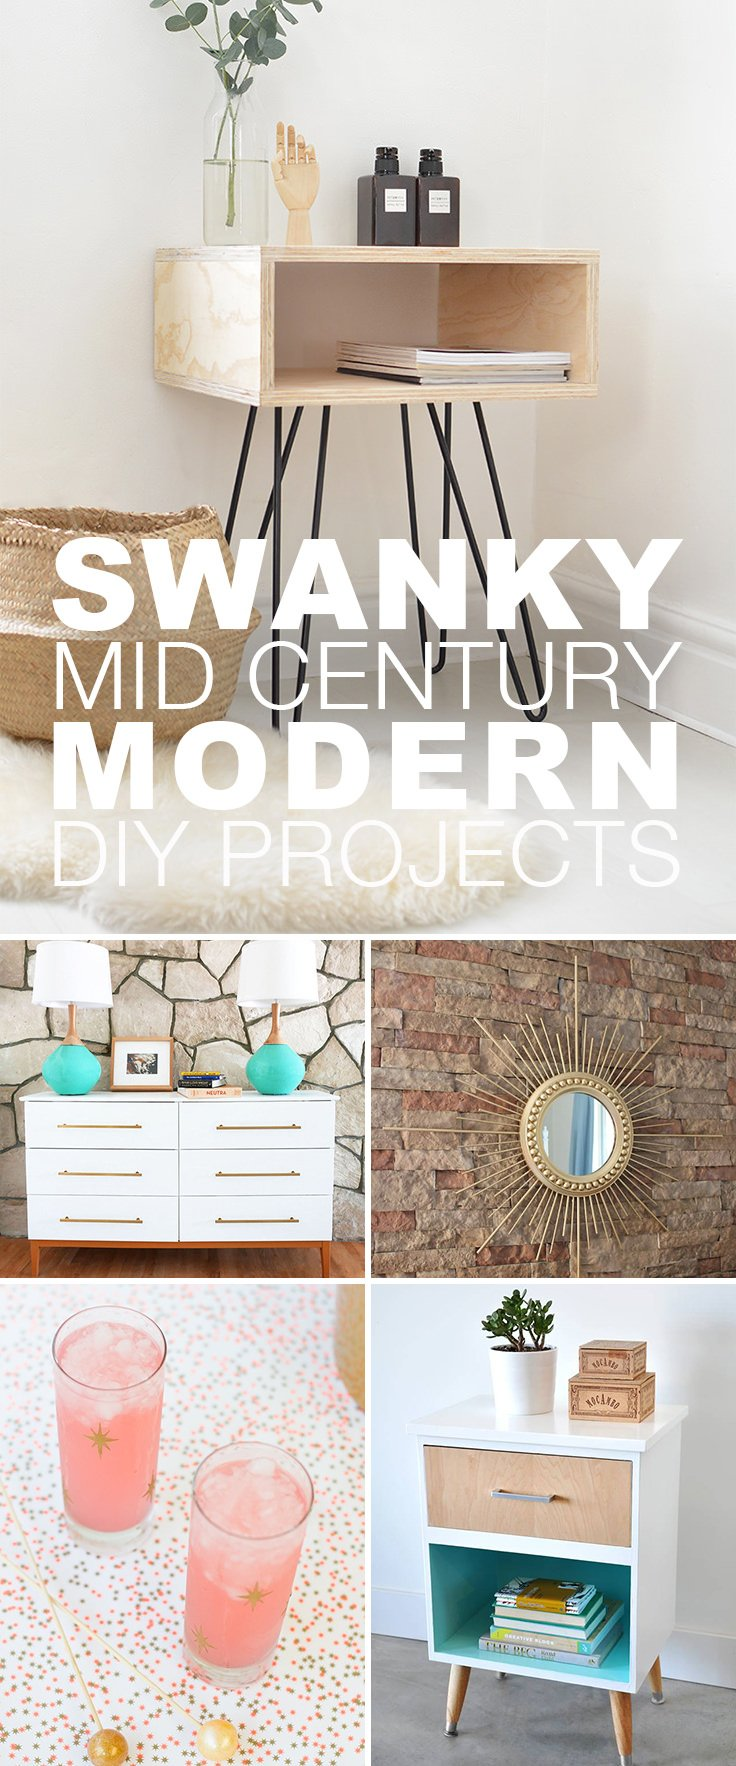 15 Swanky Mid Century Modern DIY Projects